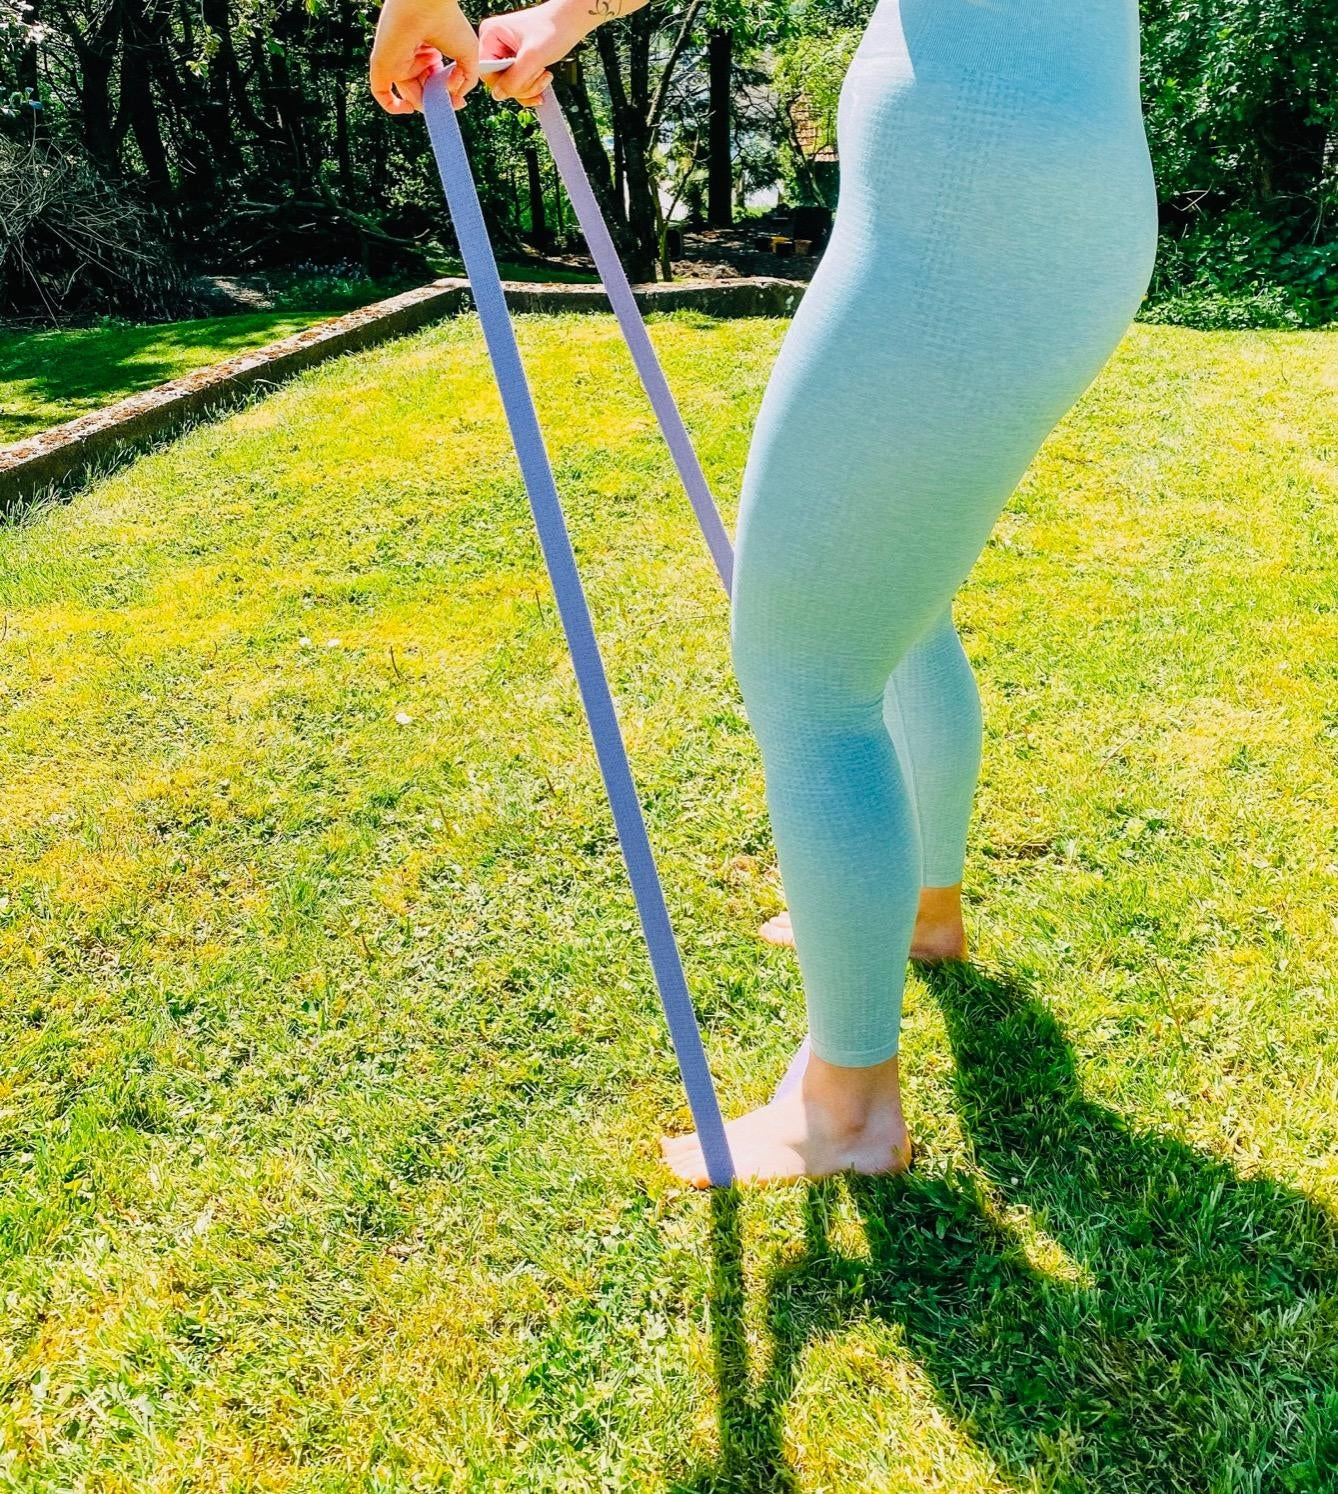 a reviewer photo of someone using the resistance bands